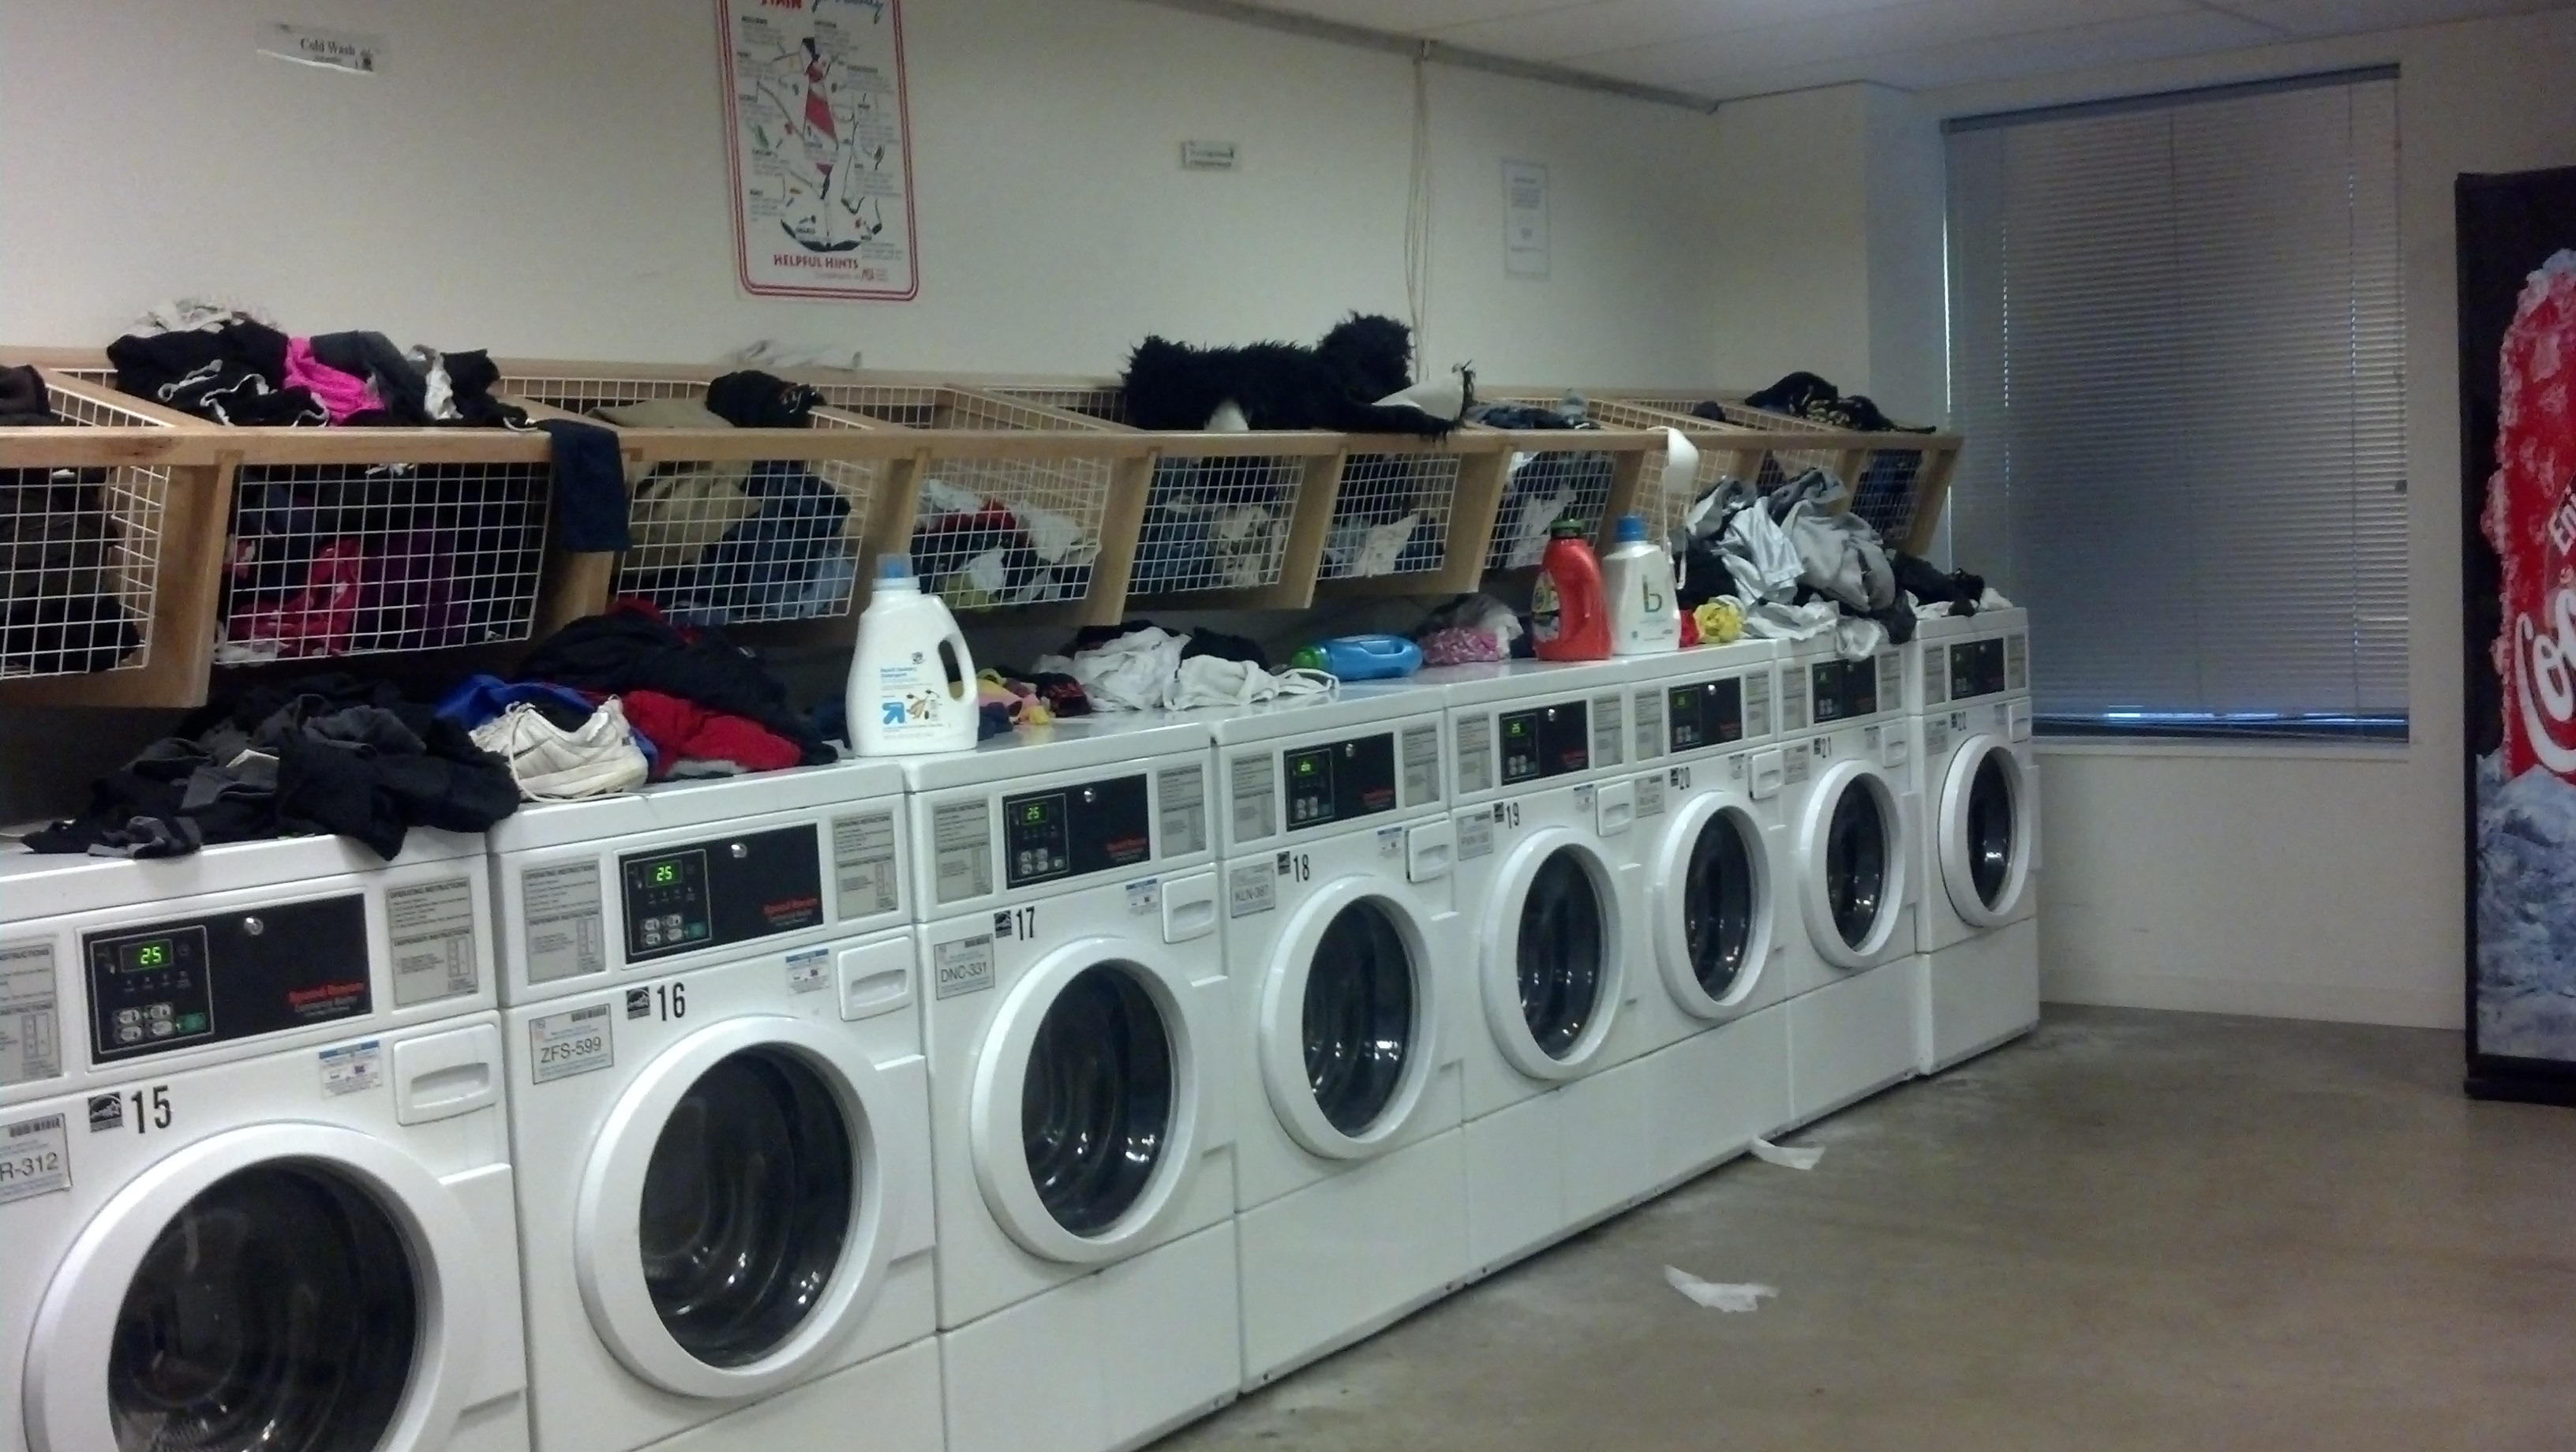 The Dos And Don'ts Of Dorm Laundry